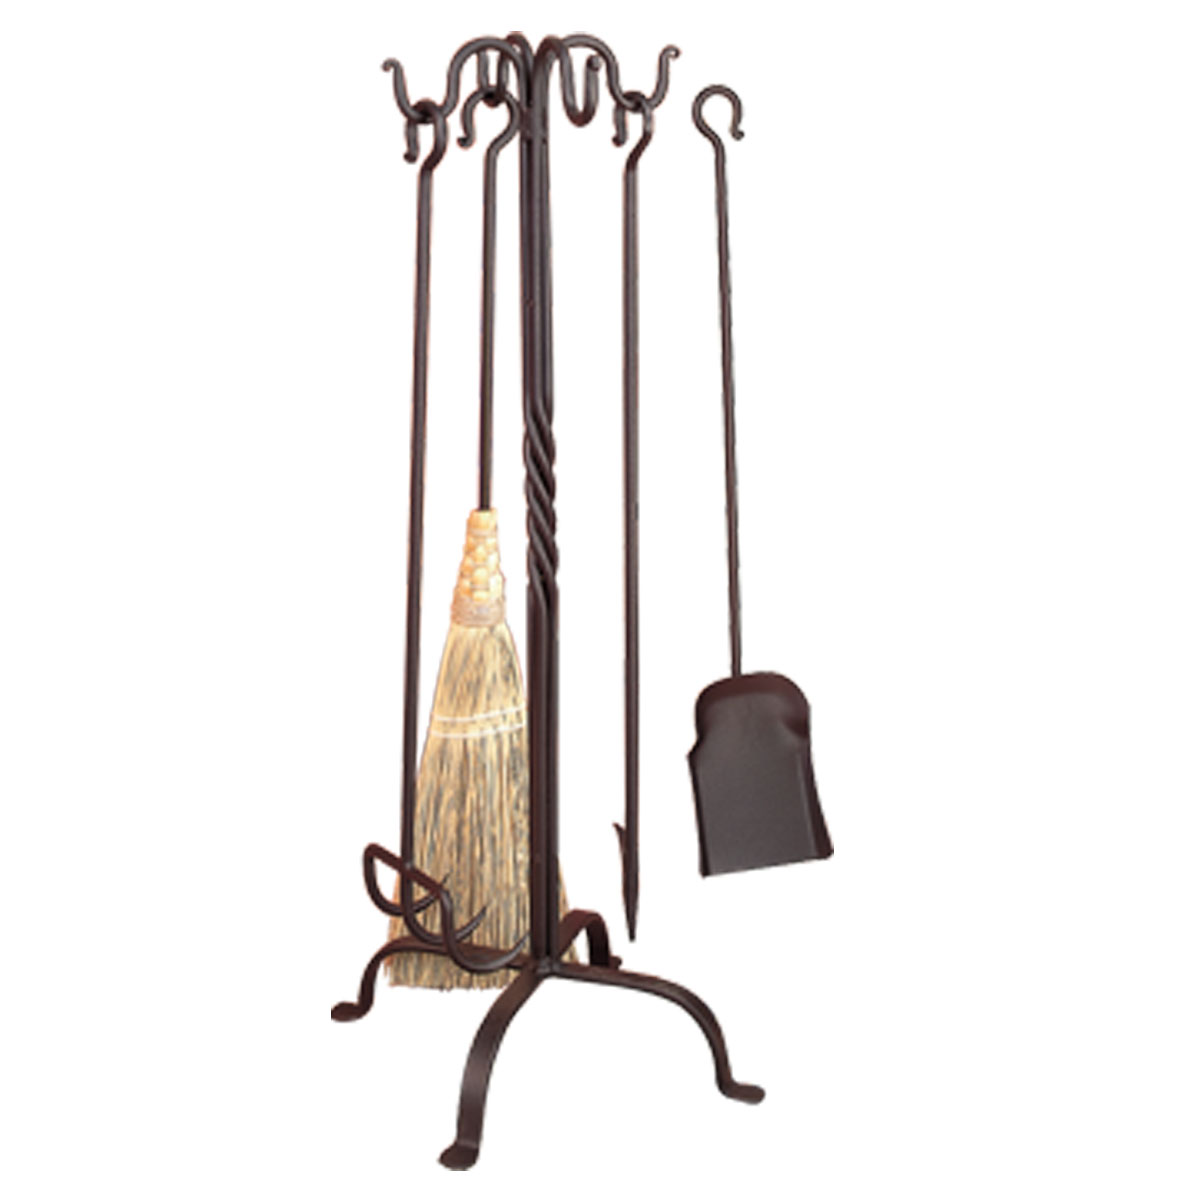 Wrought Iron Pigtail Fireplace Tool Set Deluxe